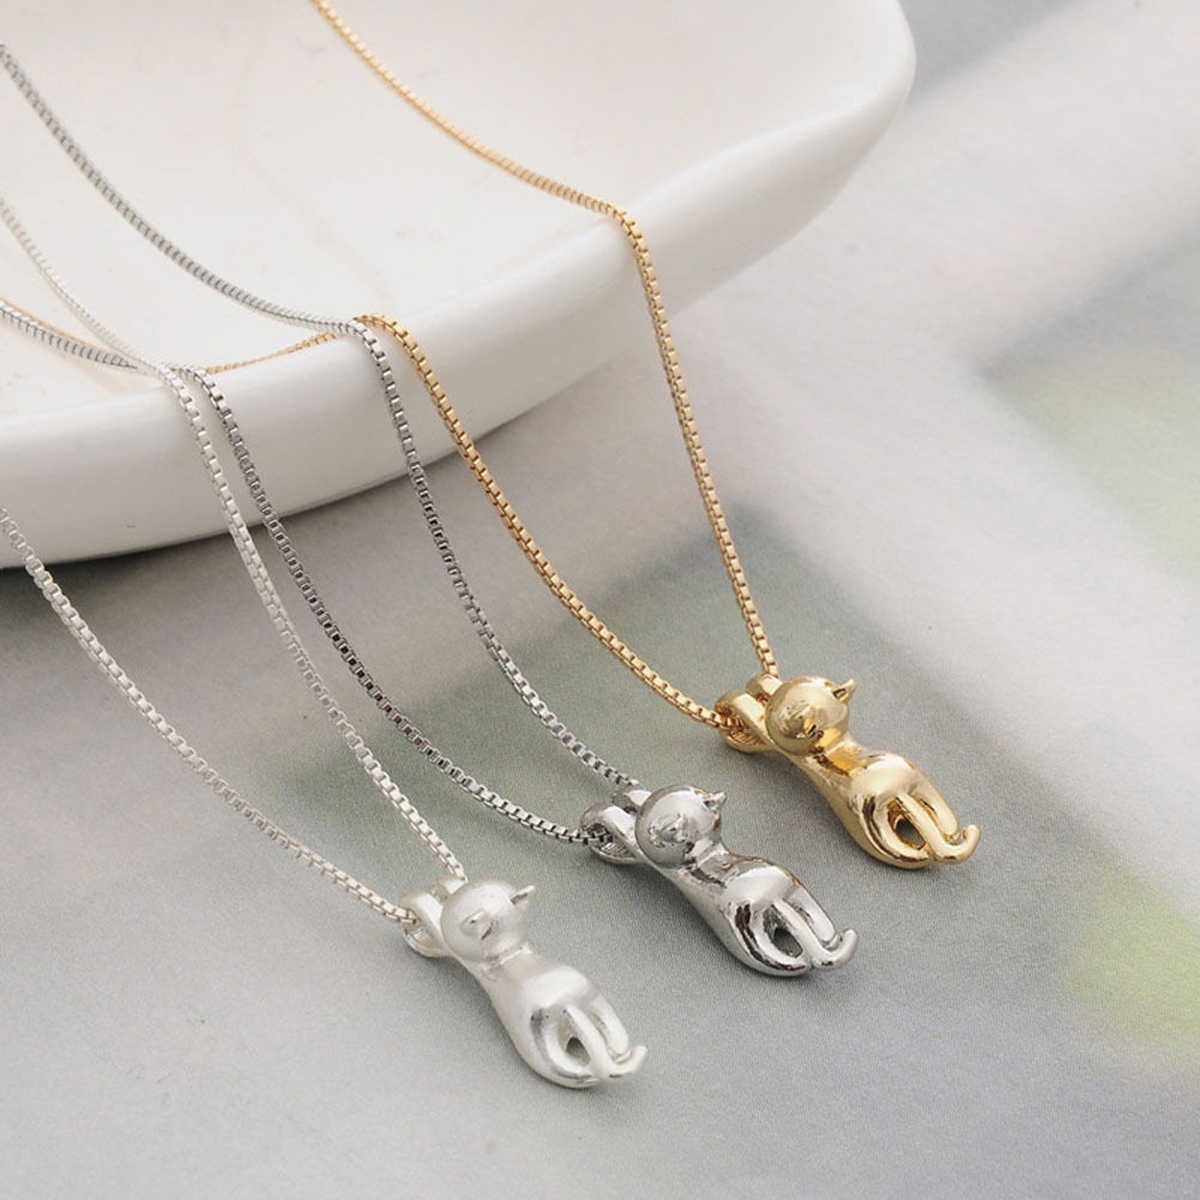 Fashion Cat Necklace For Women Girl Trendy Animal Pet Silver Gold Polished Cat Pendant Necklace Long Chain Charm Vintage Jewelry